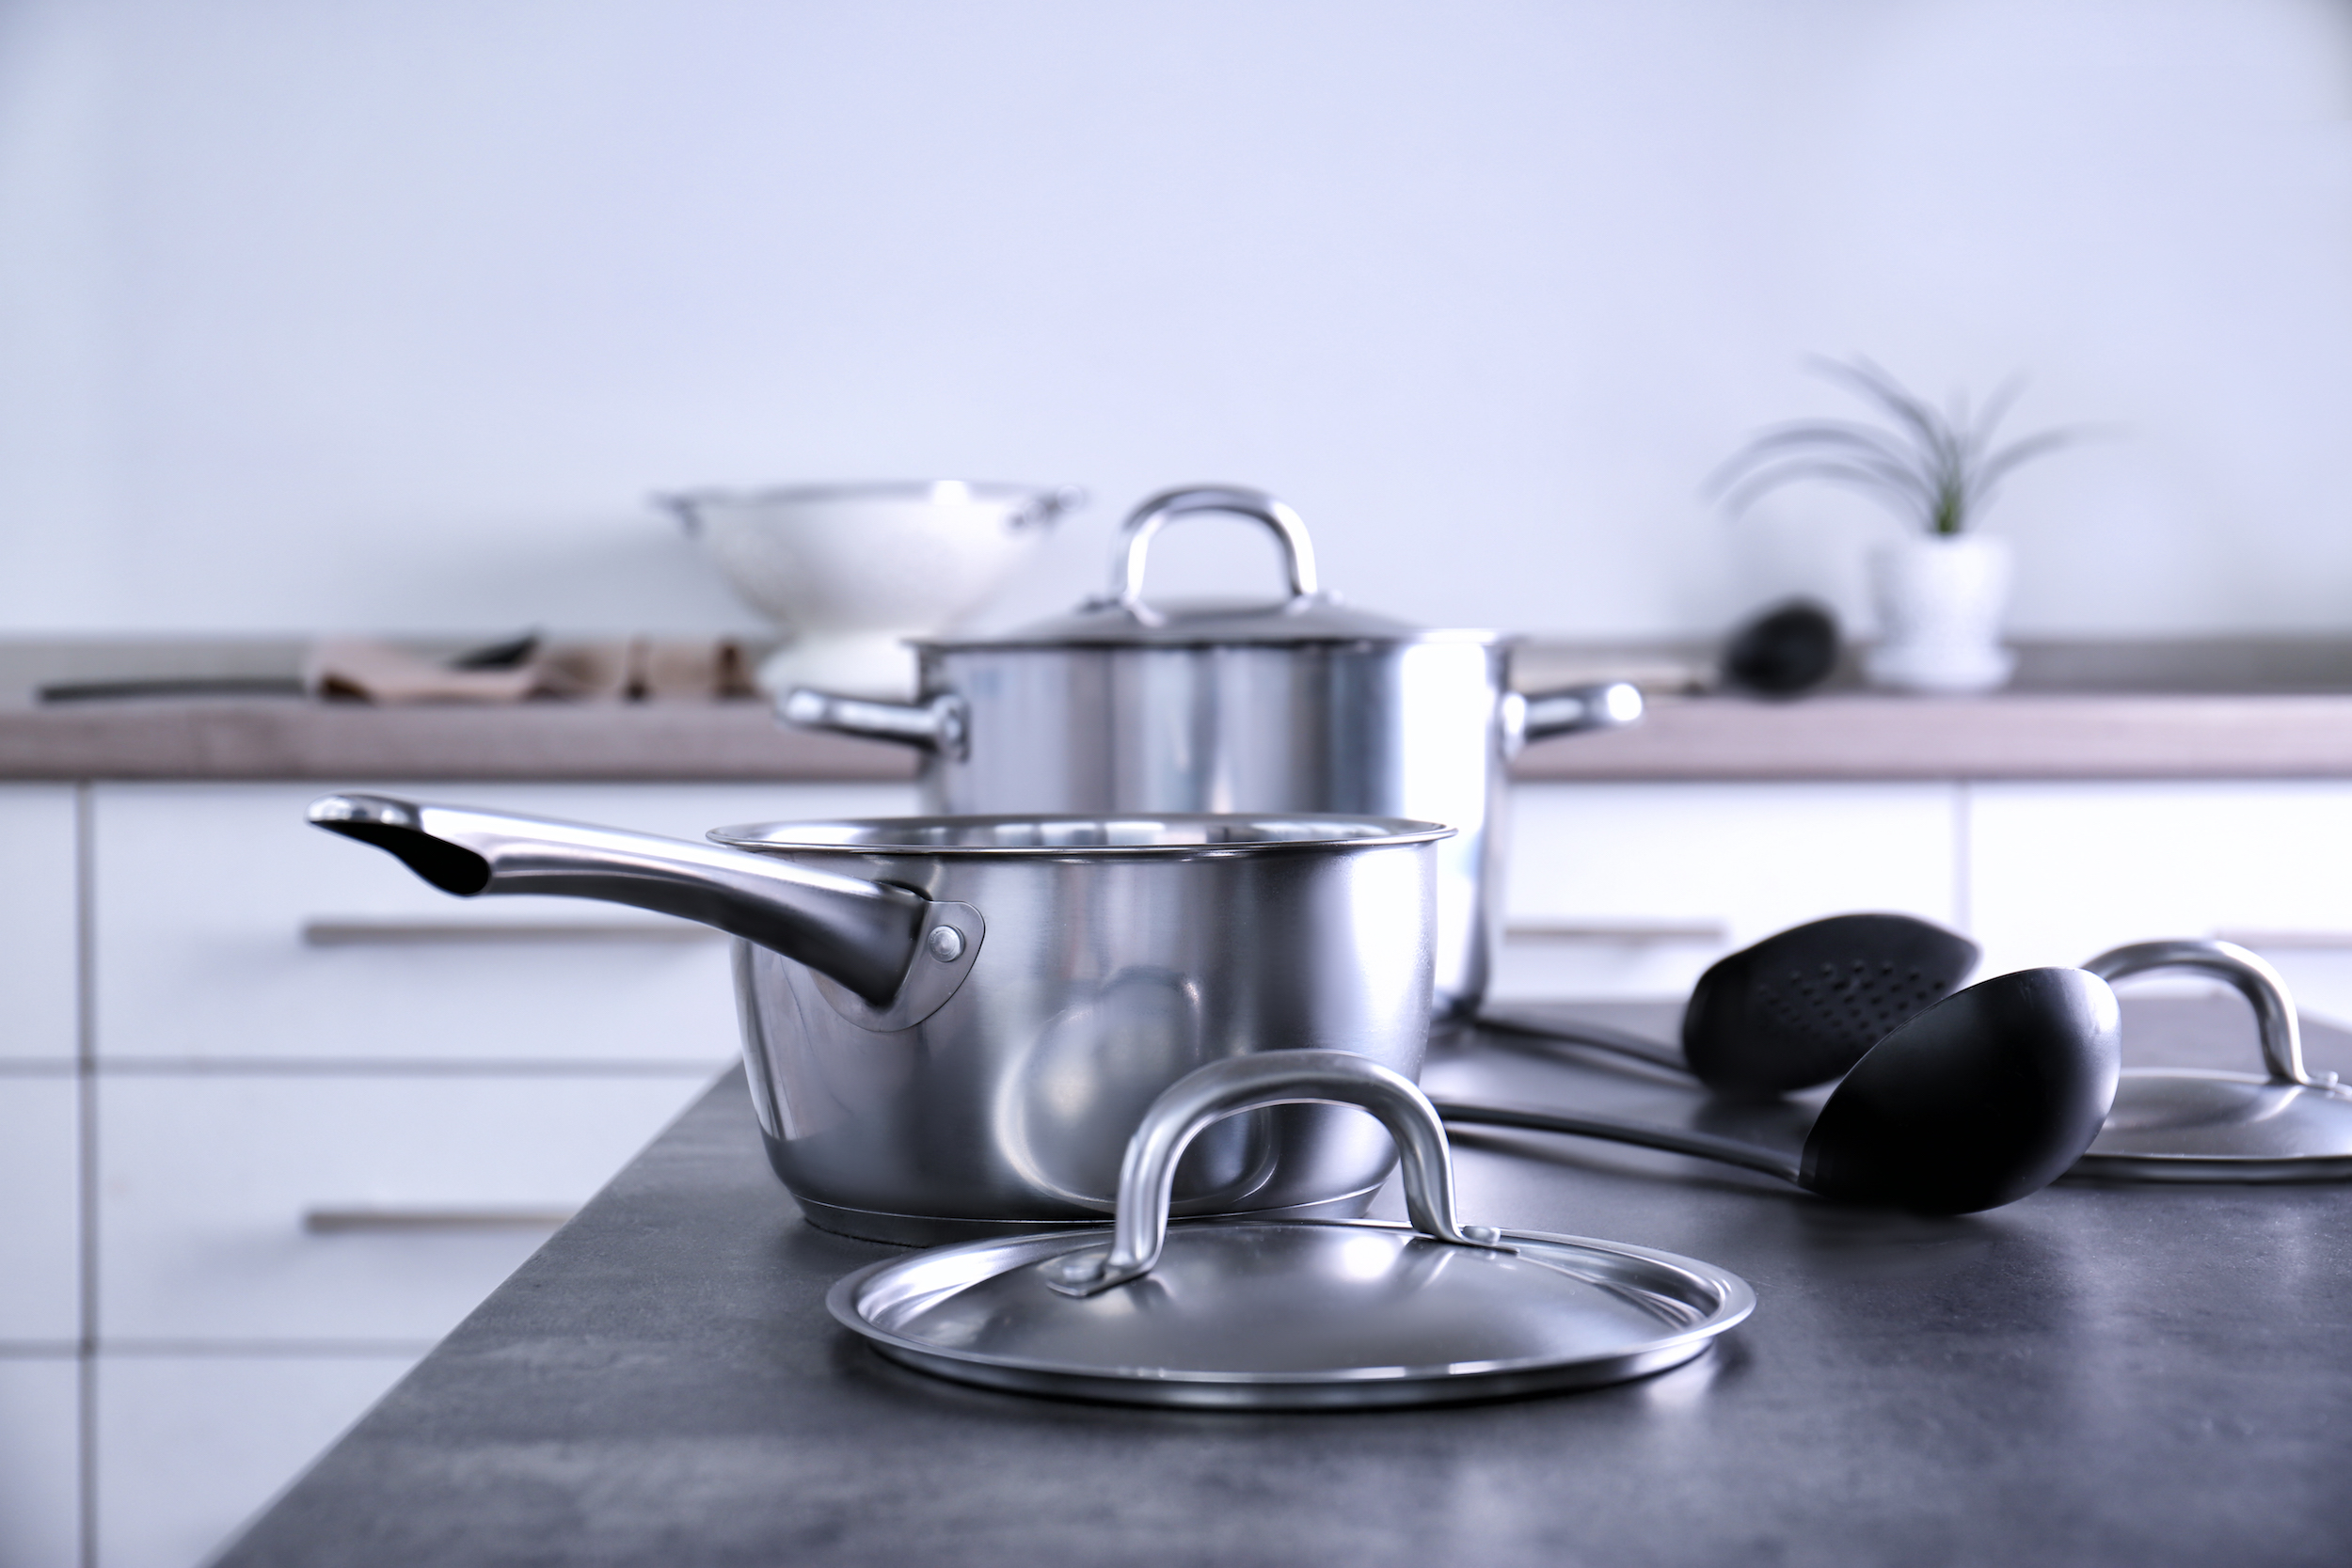 Top 8 Toxic Ingredients Hiding in Kitchen Products